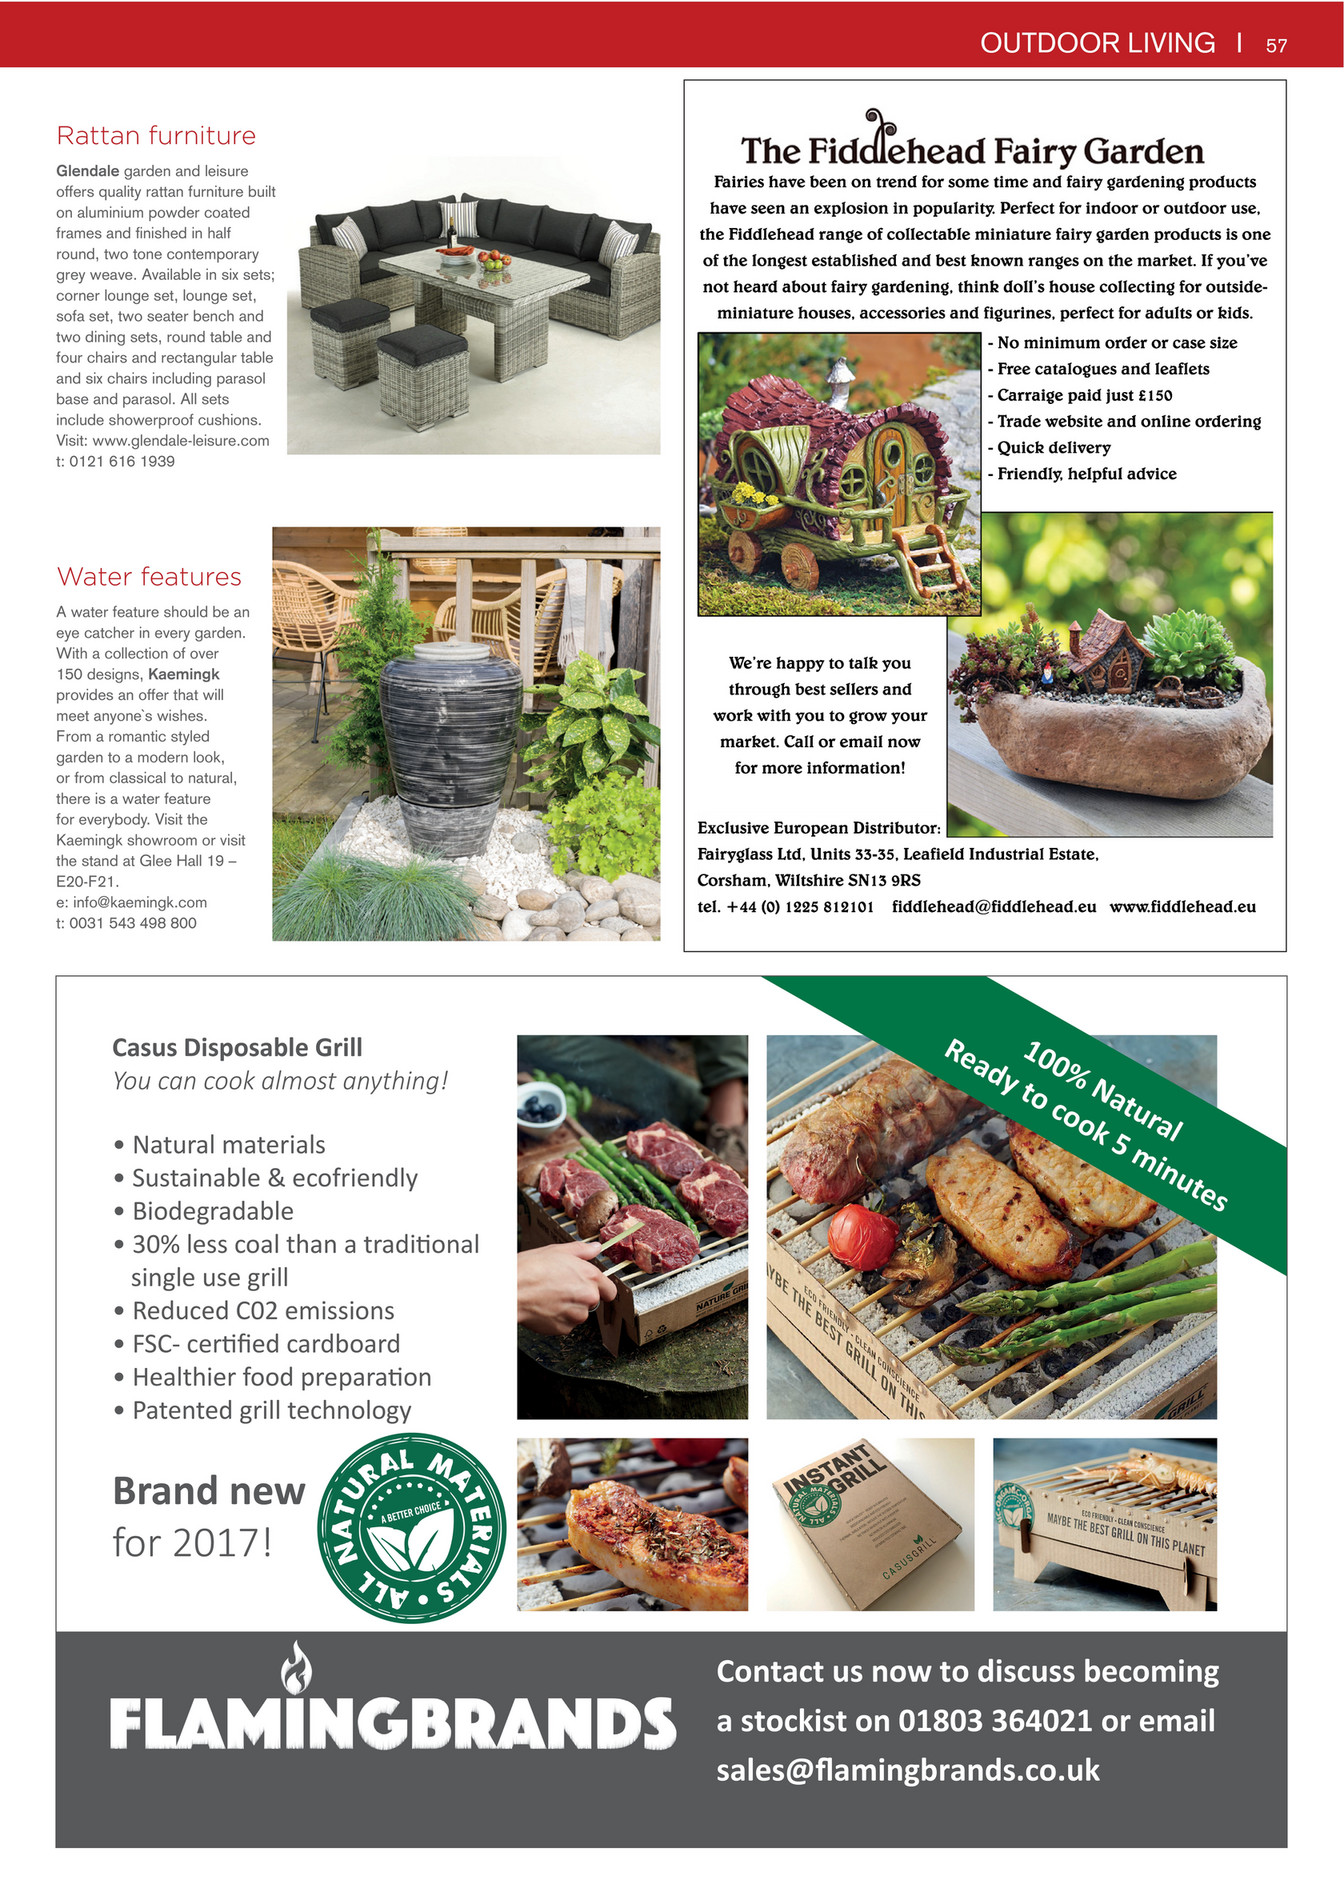 detail extra ltd - garden centre buyer apr/may 2017 - page 56-57